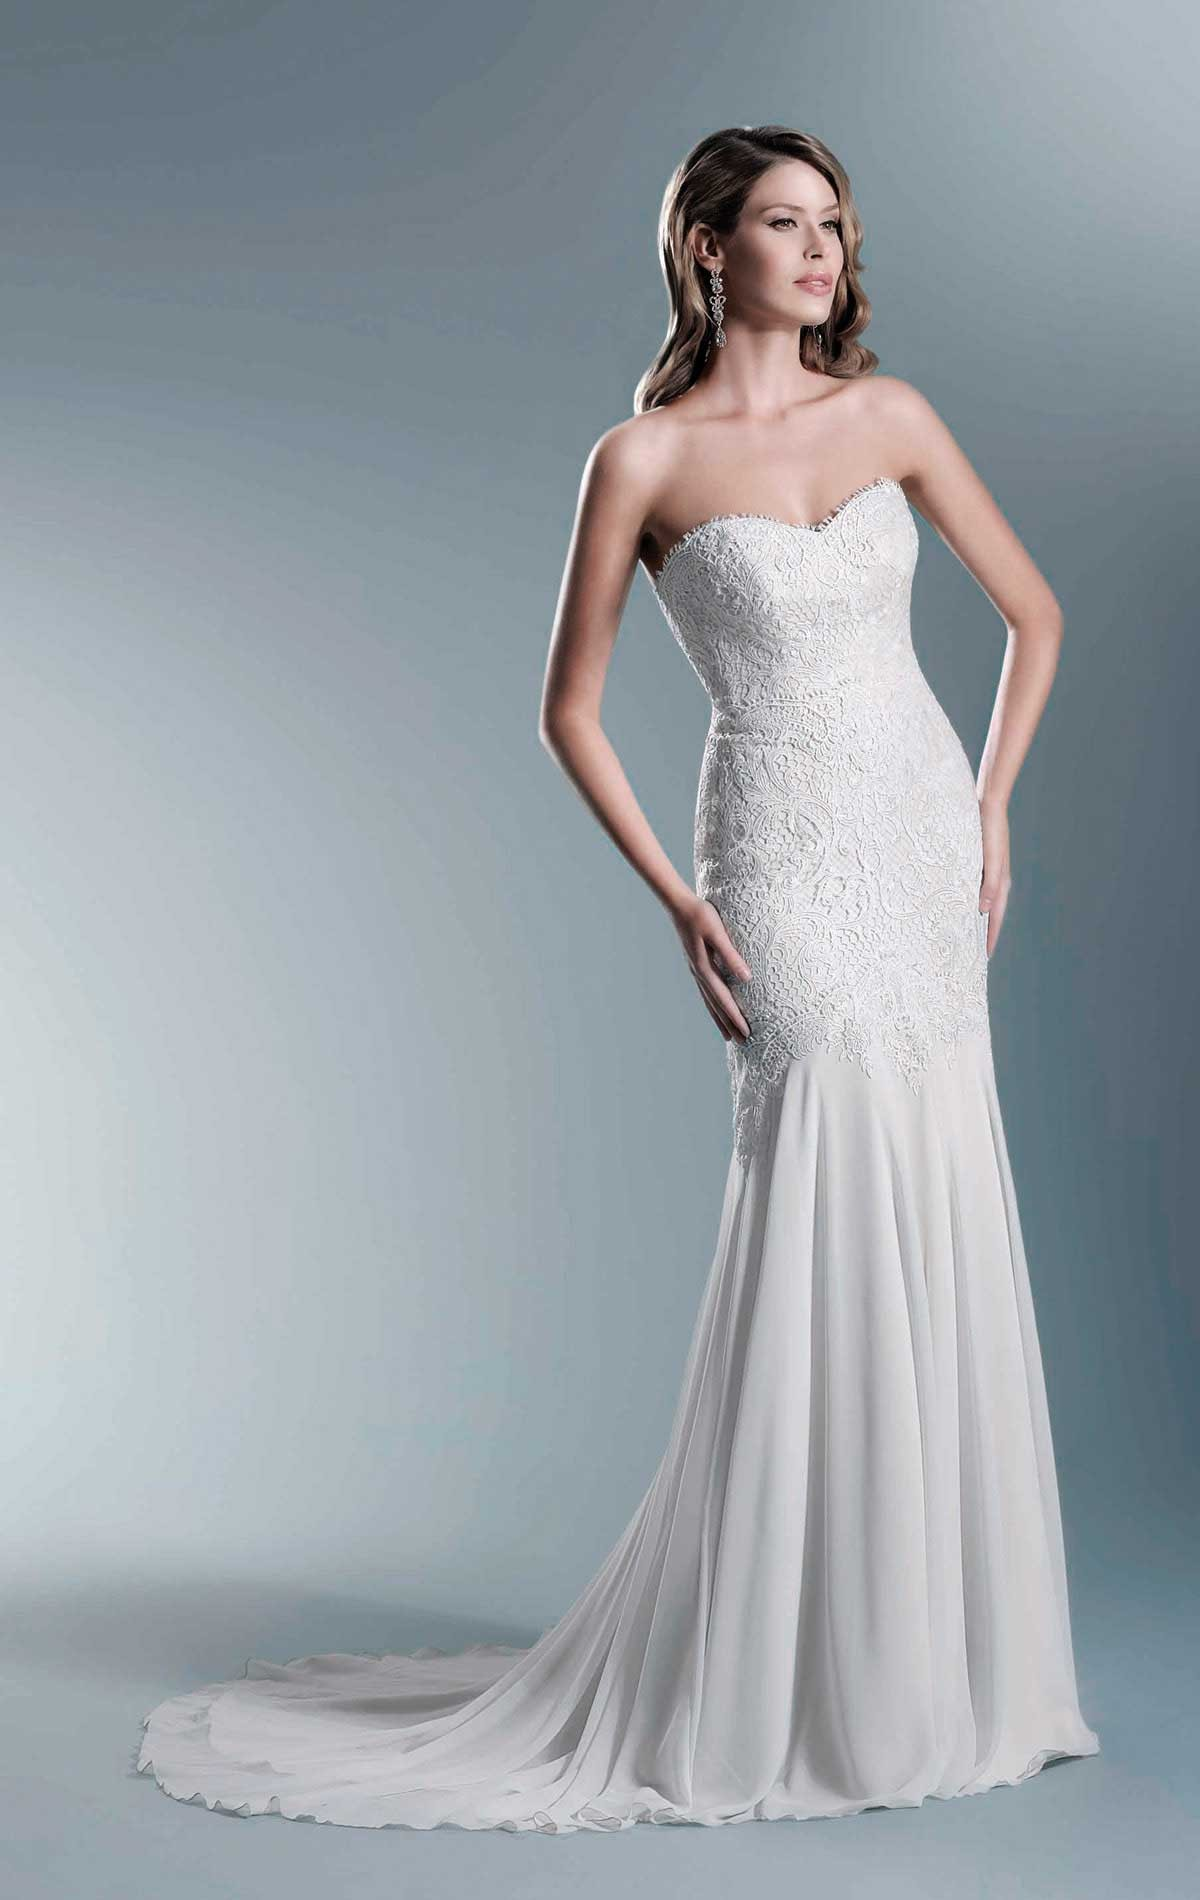 Agnes Bridal TO665T Wedding Dress | Blessings of Brighton